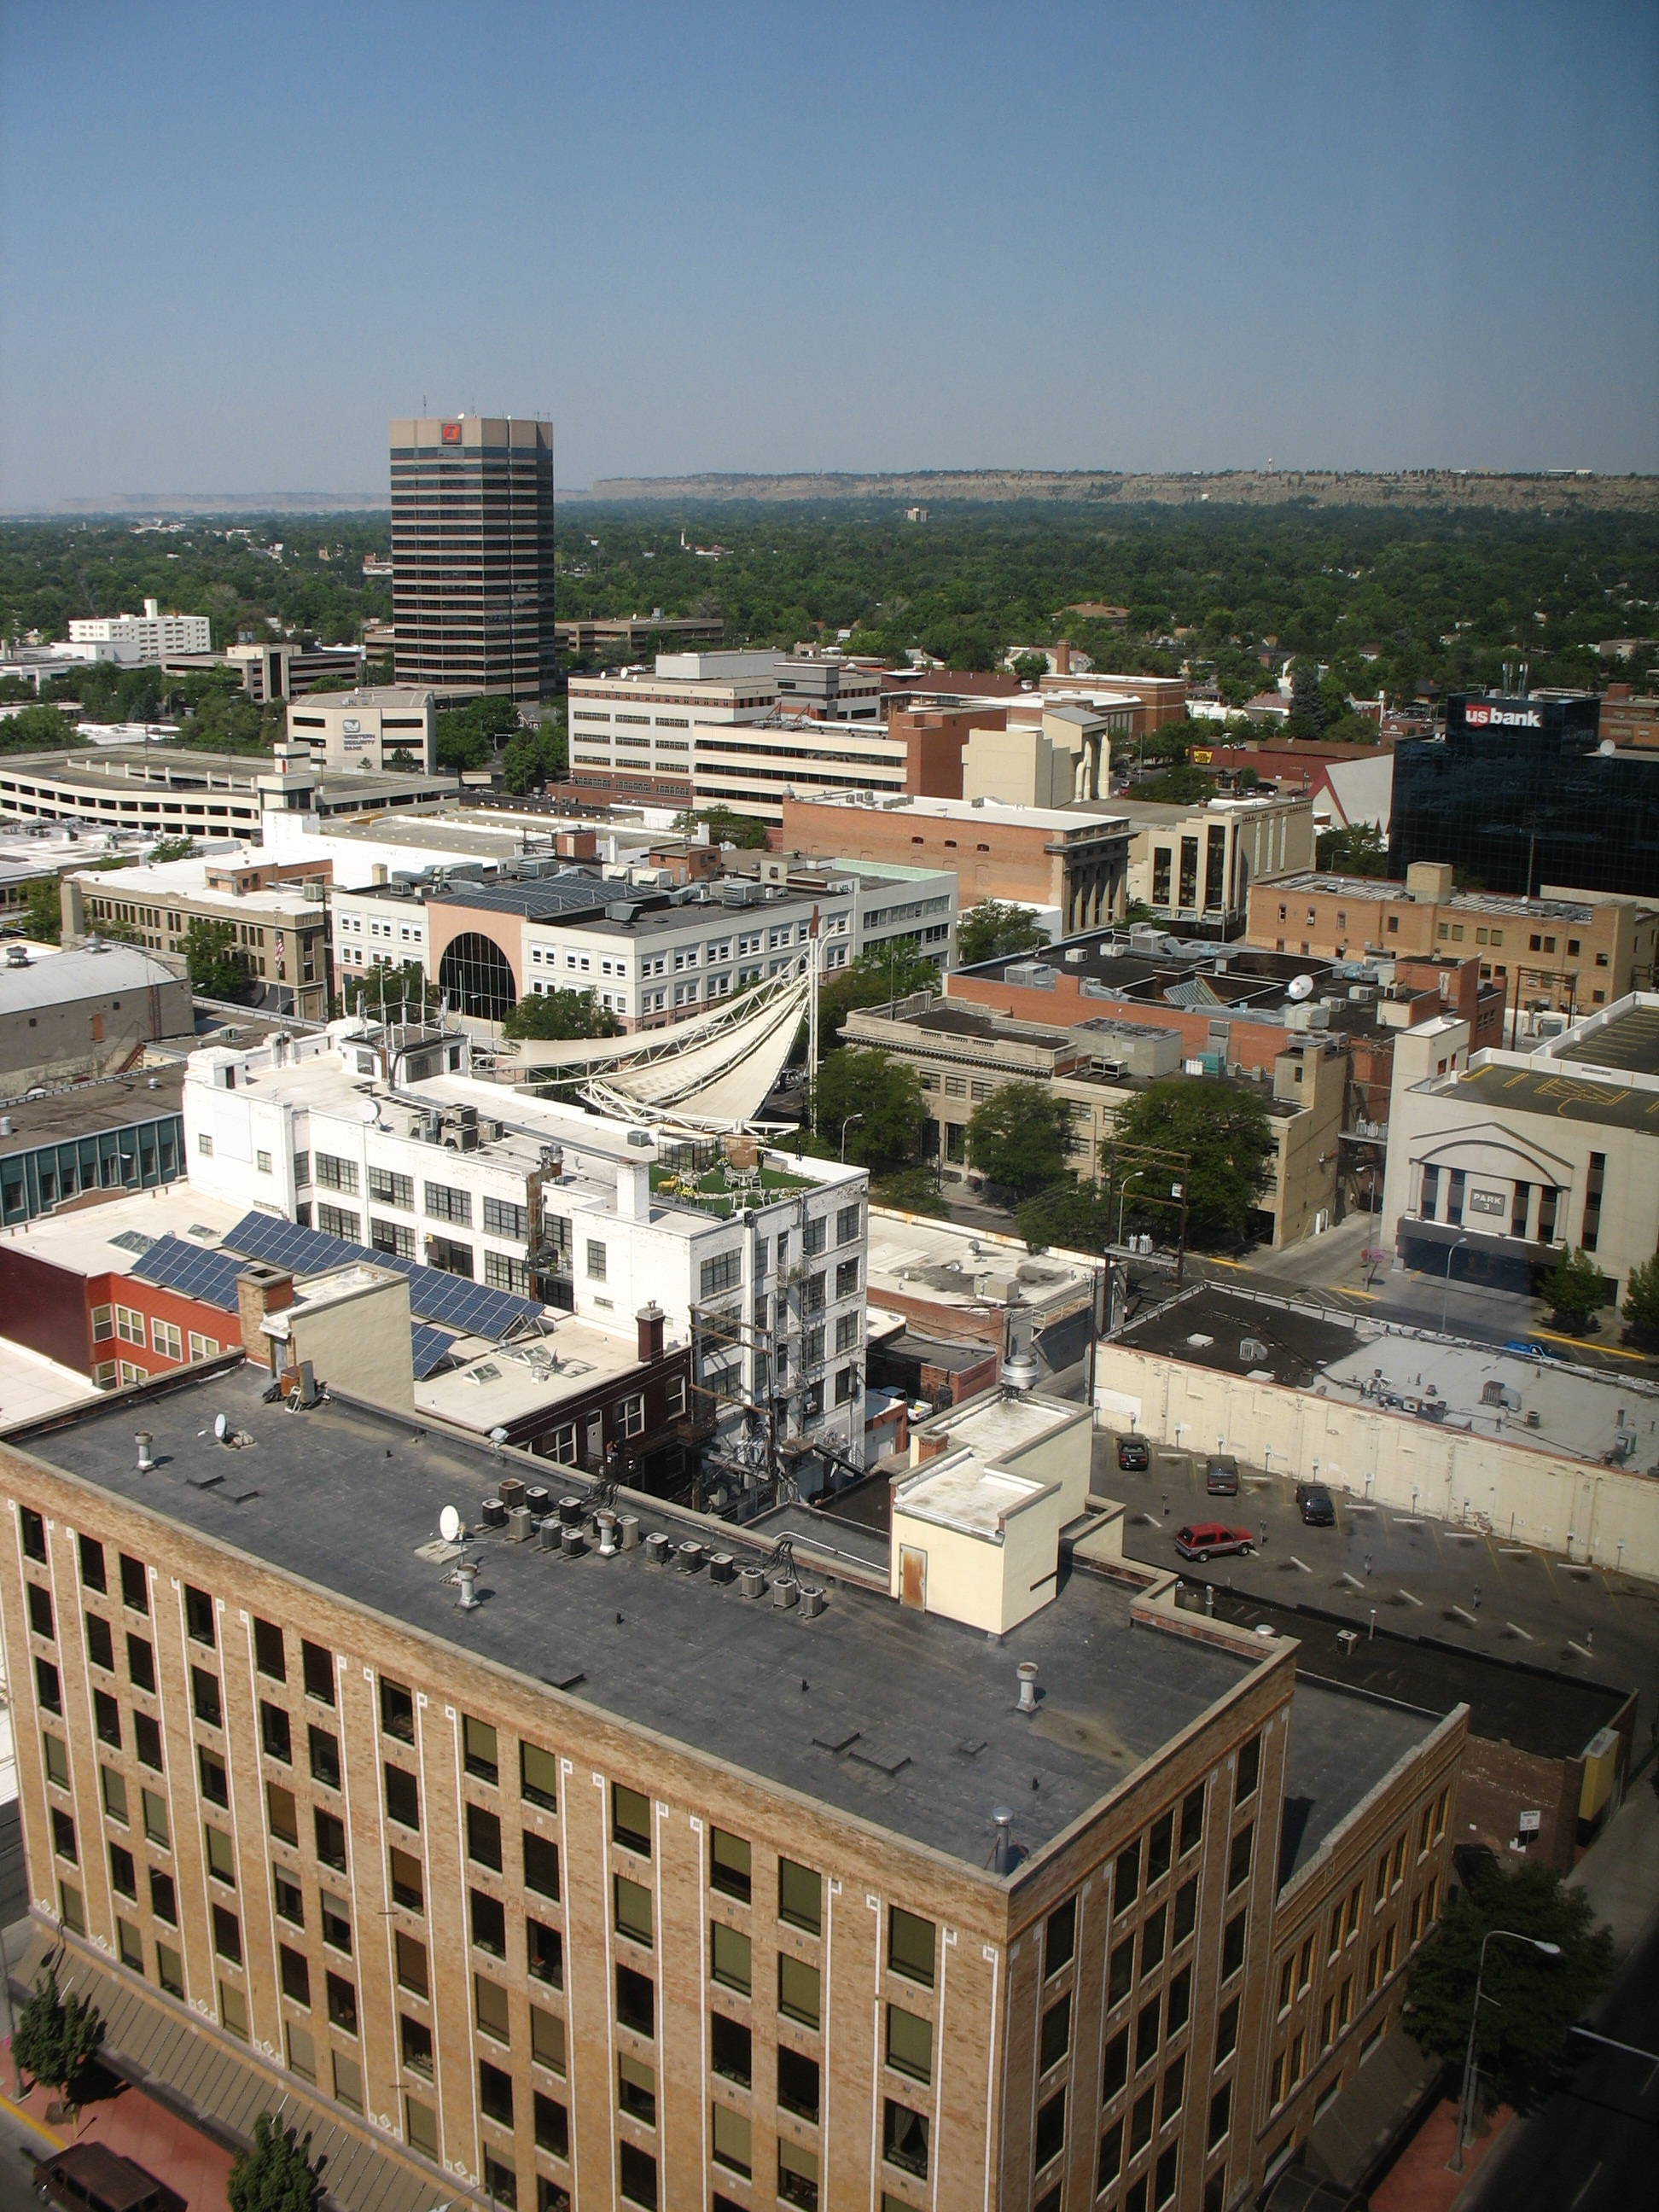 Billings: Great Place to Start Business